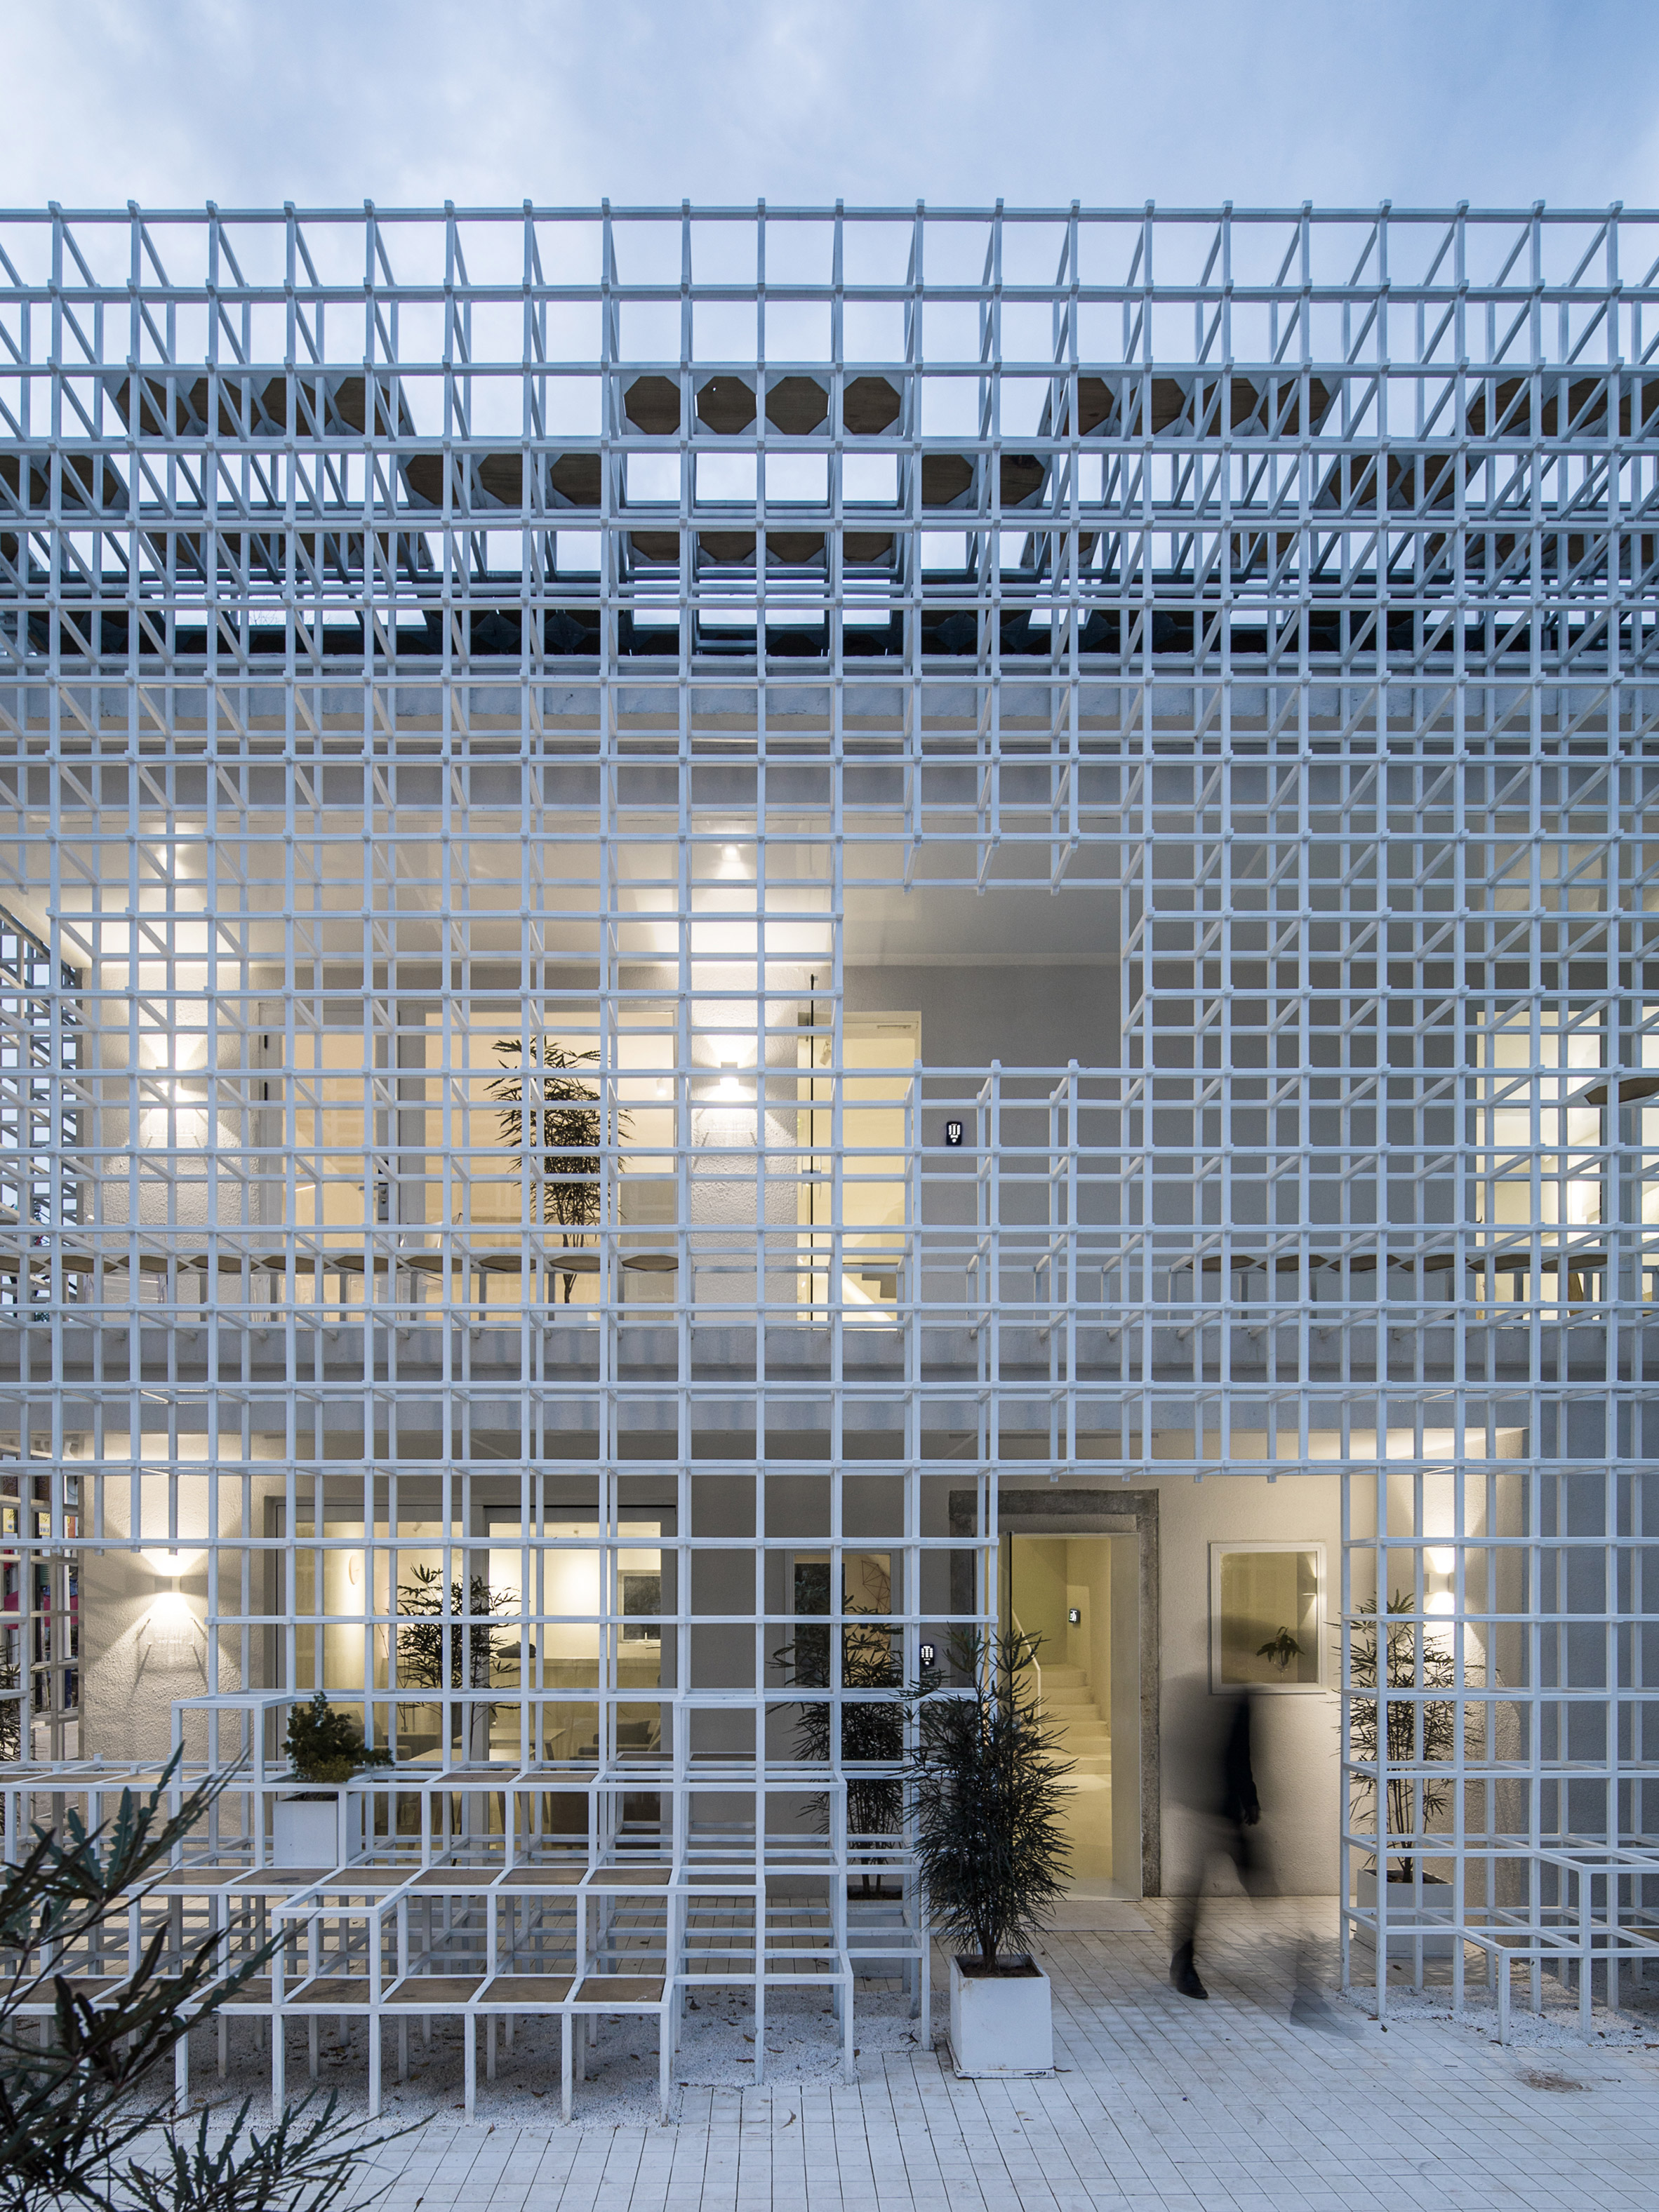 Latticed framework incorporates seating around the edges of Shenzhen hotel and cultural centre